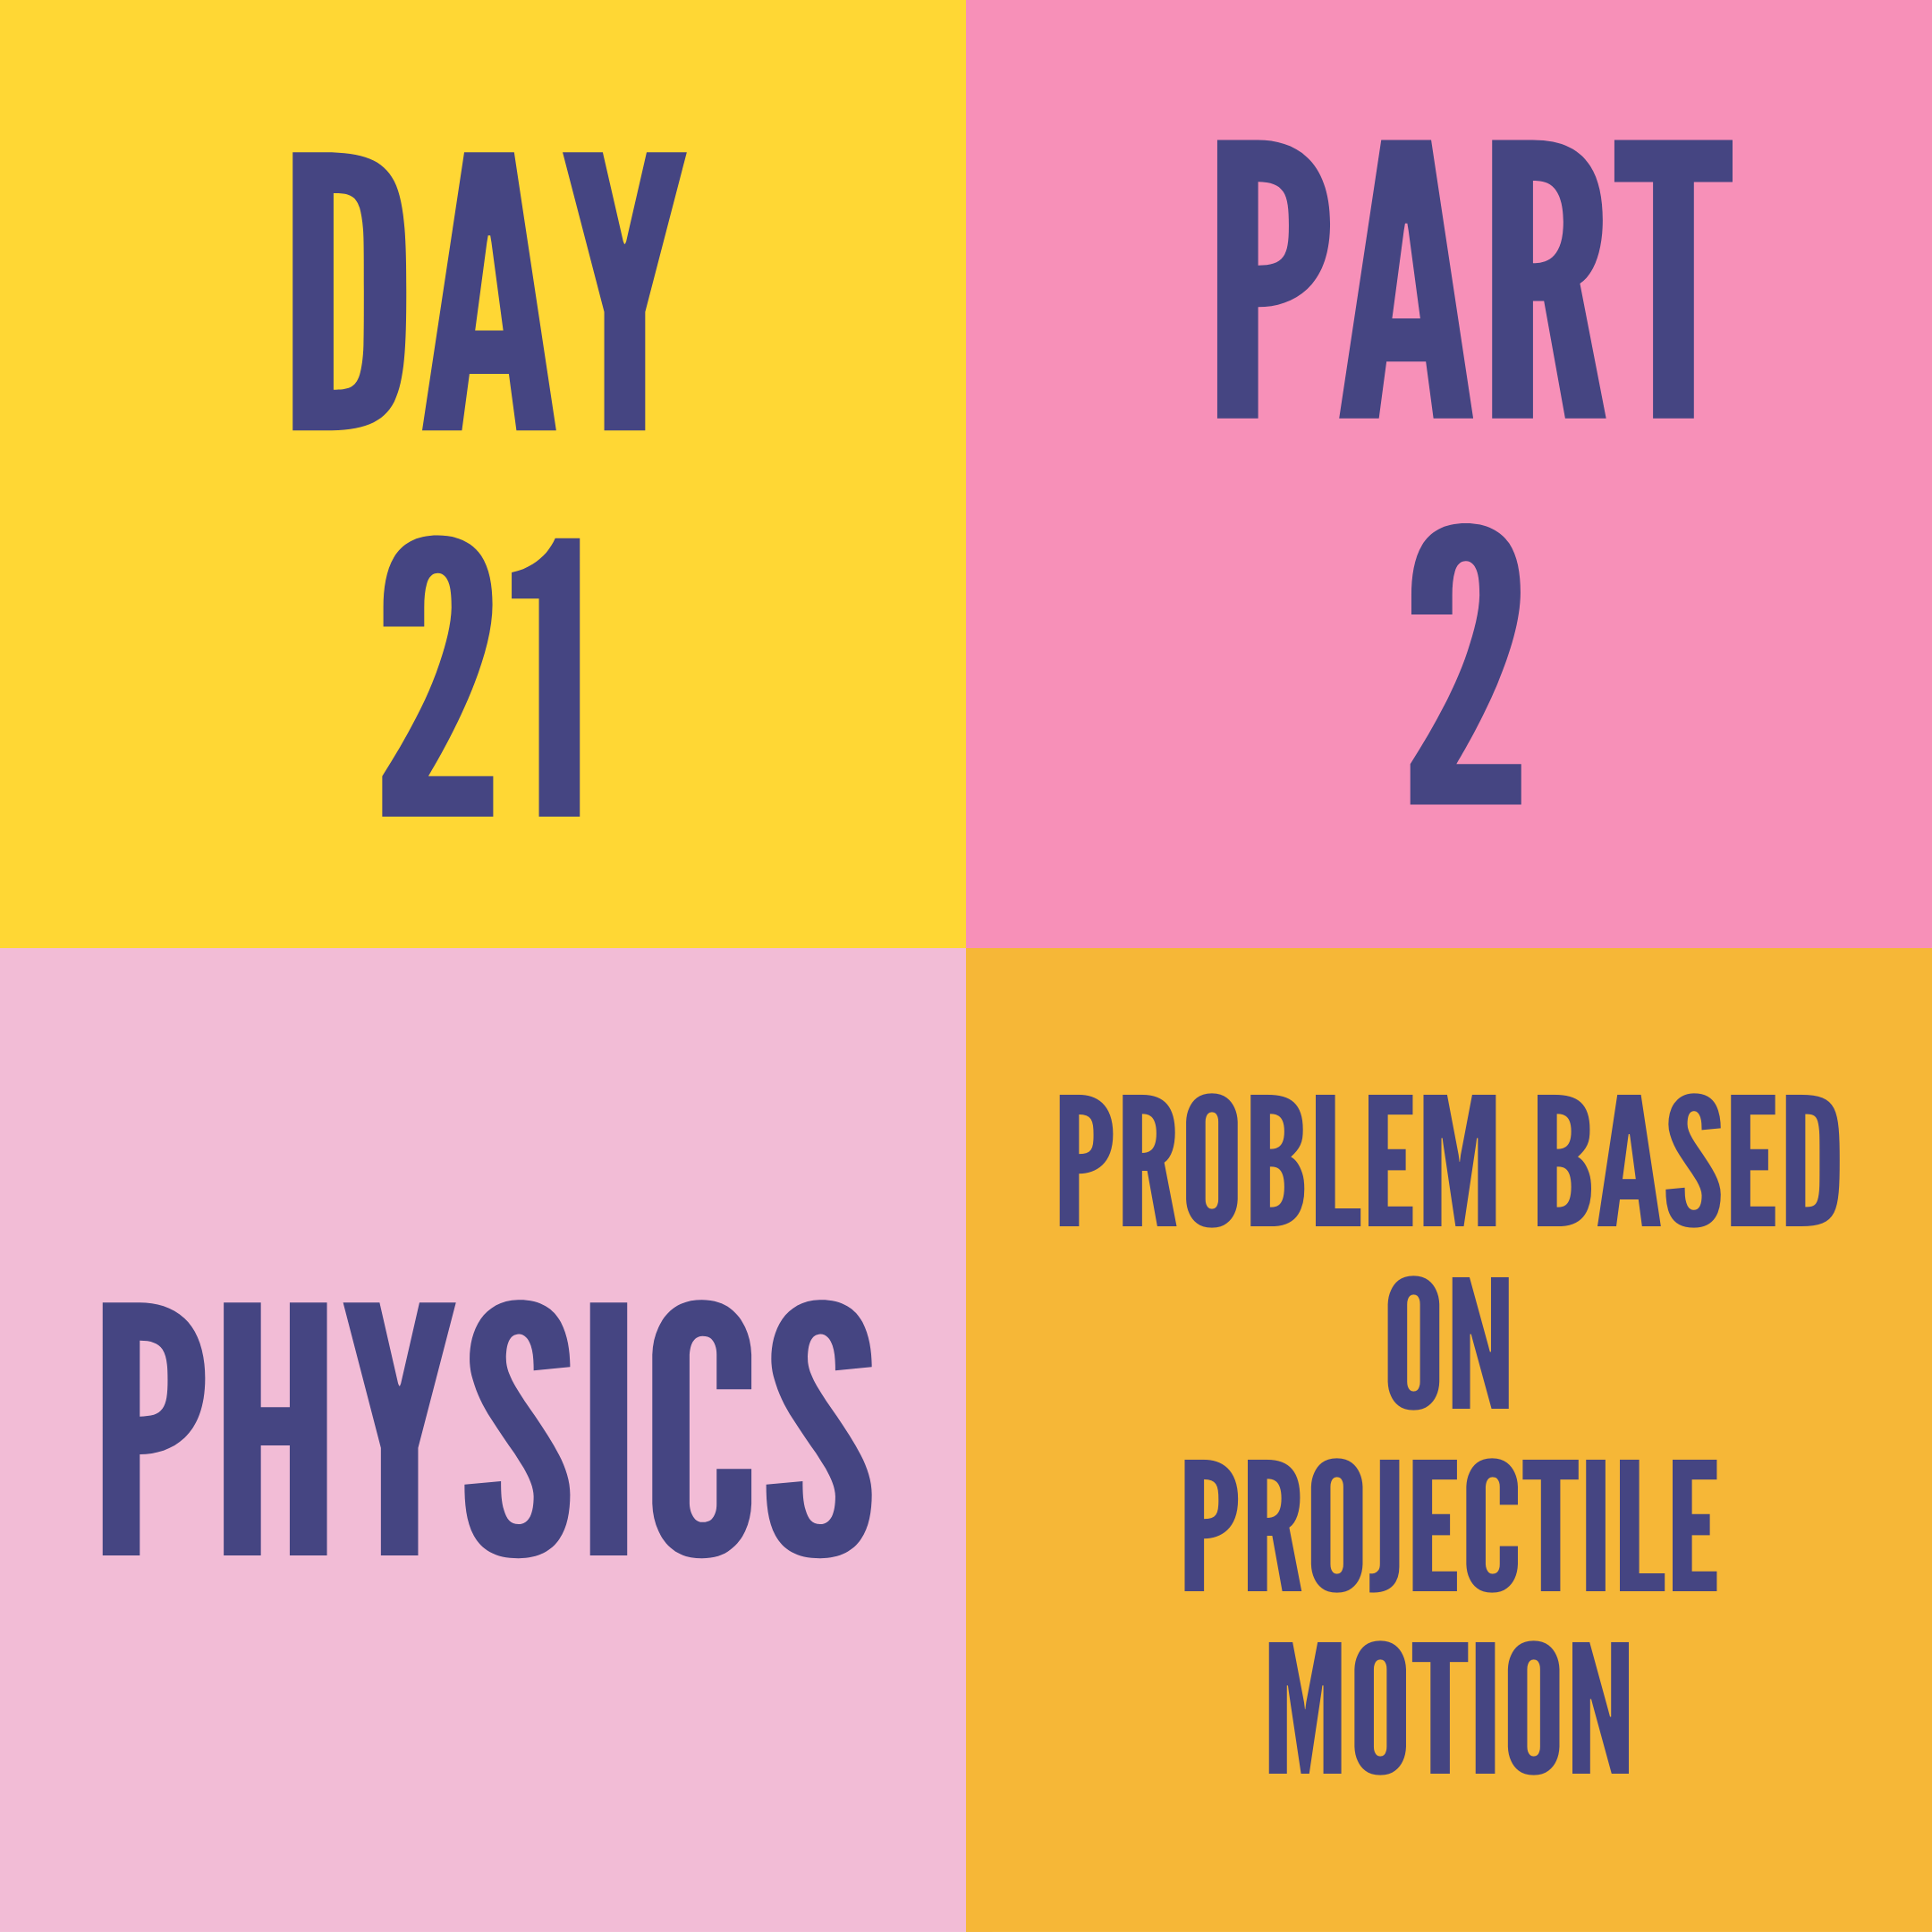 DAY-21 PART-2 PROBLEM BASED ON PROJECTILE MOTION